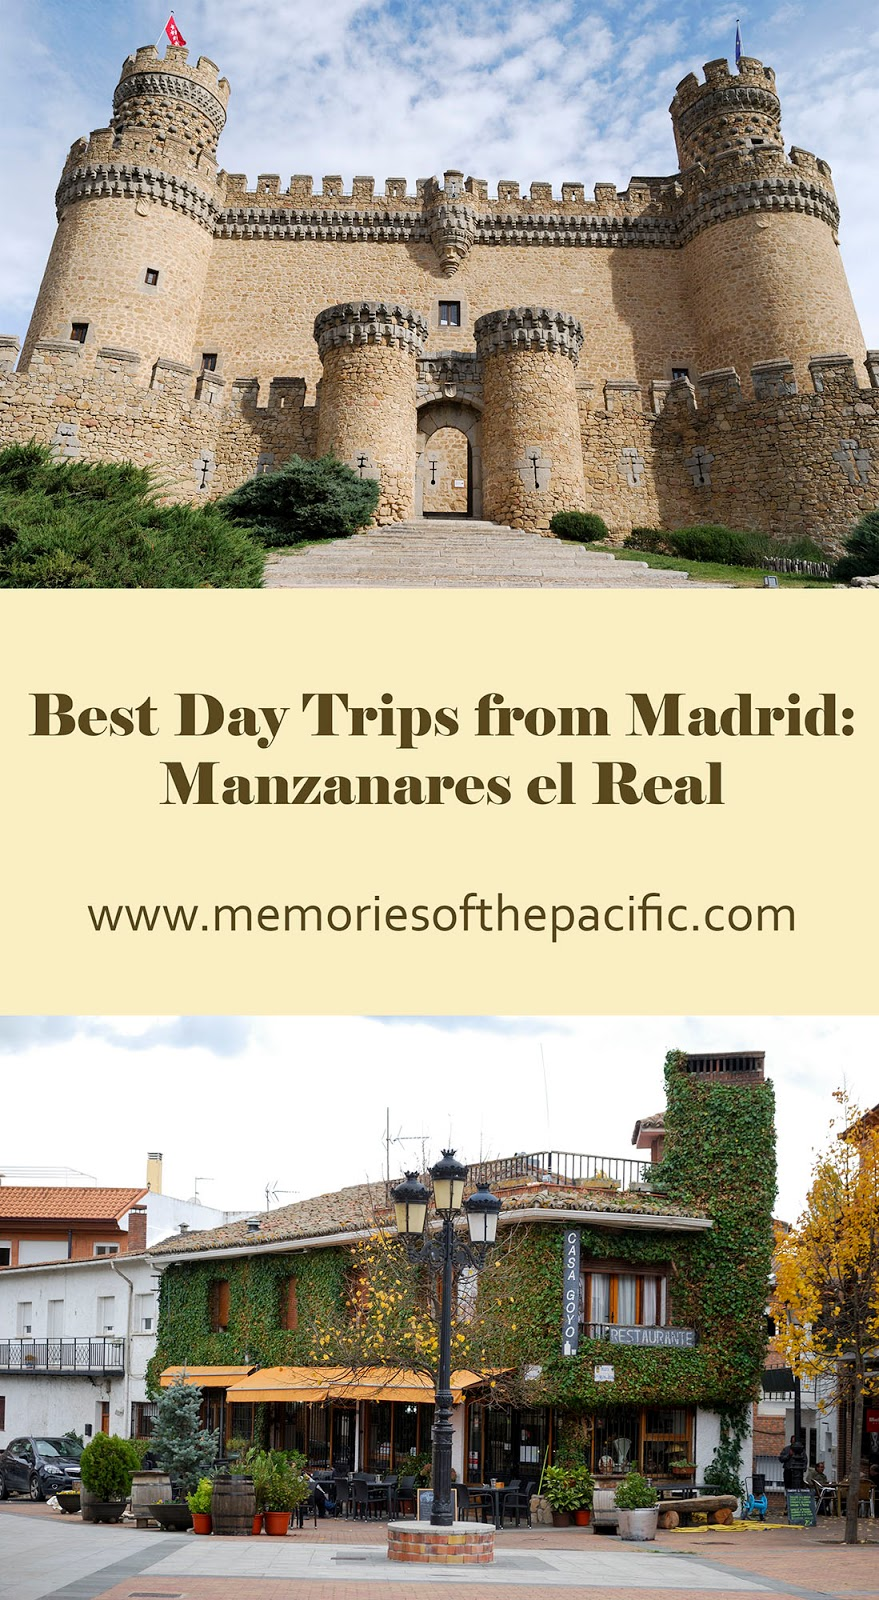 madrid manzanares real castle castillo natural park nature hiking trail day trip historical site spain